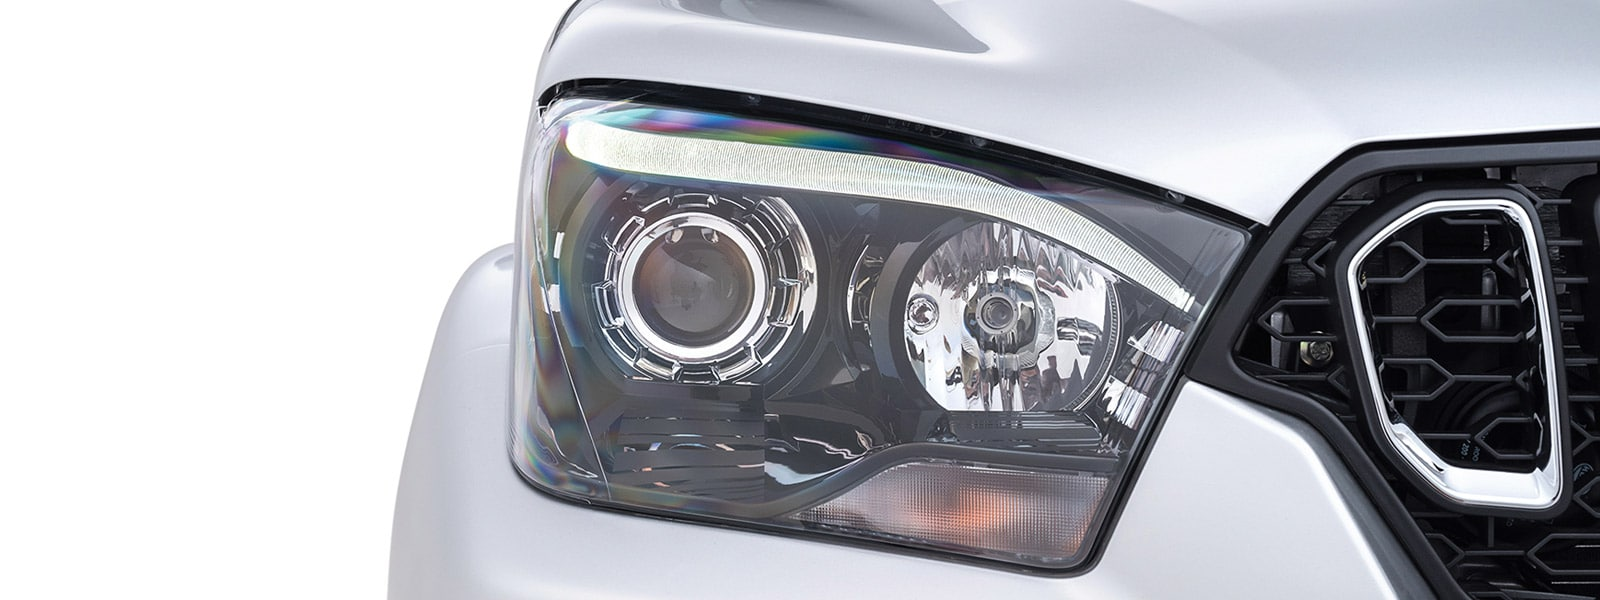 Distinctive daytime running lights